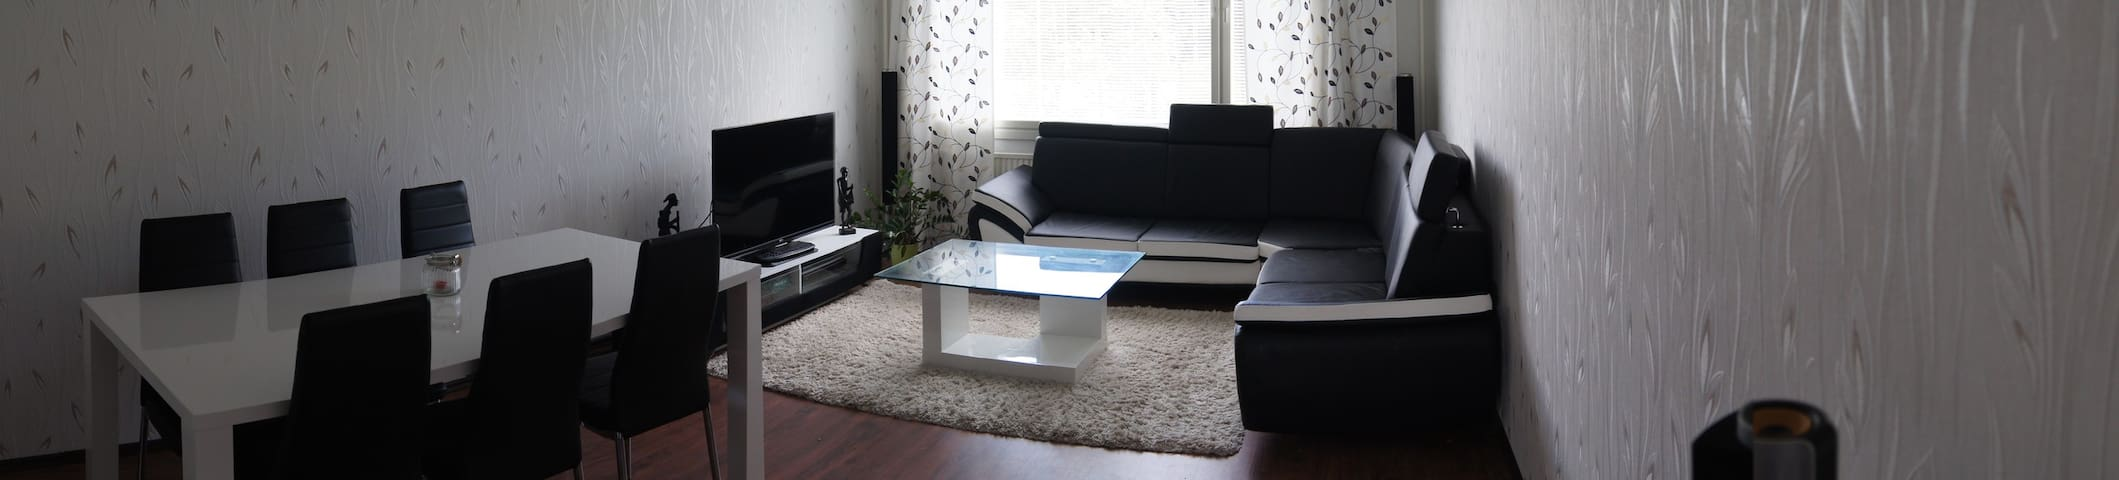 Spacious and comfy apartment full of light! - Åbo - Daire